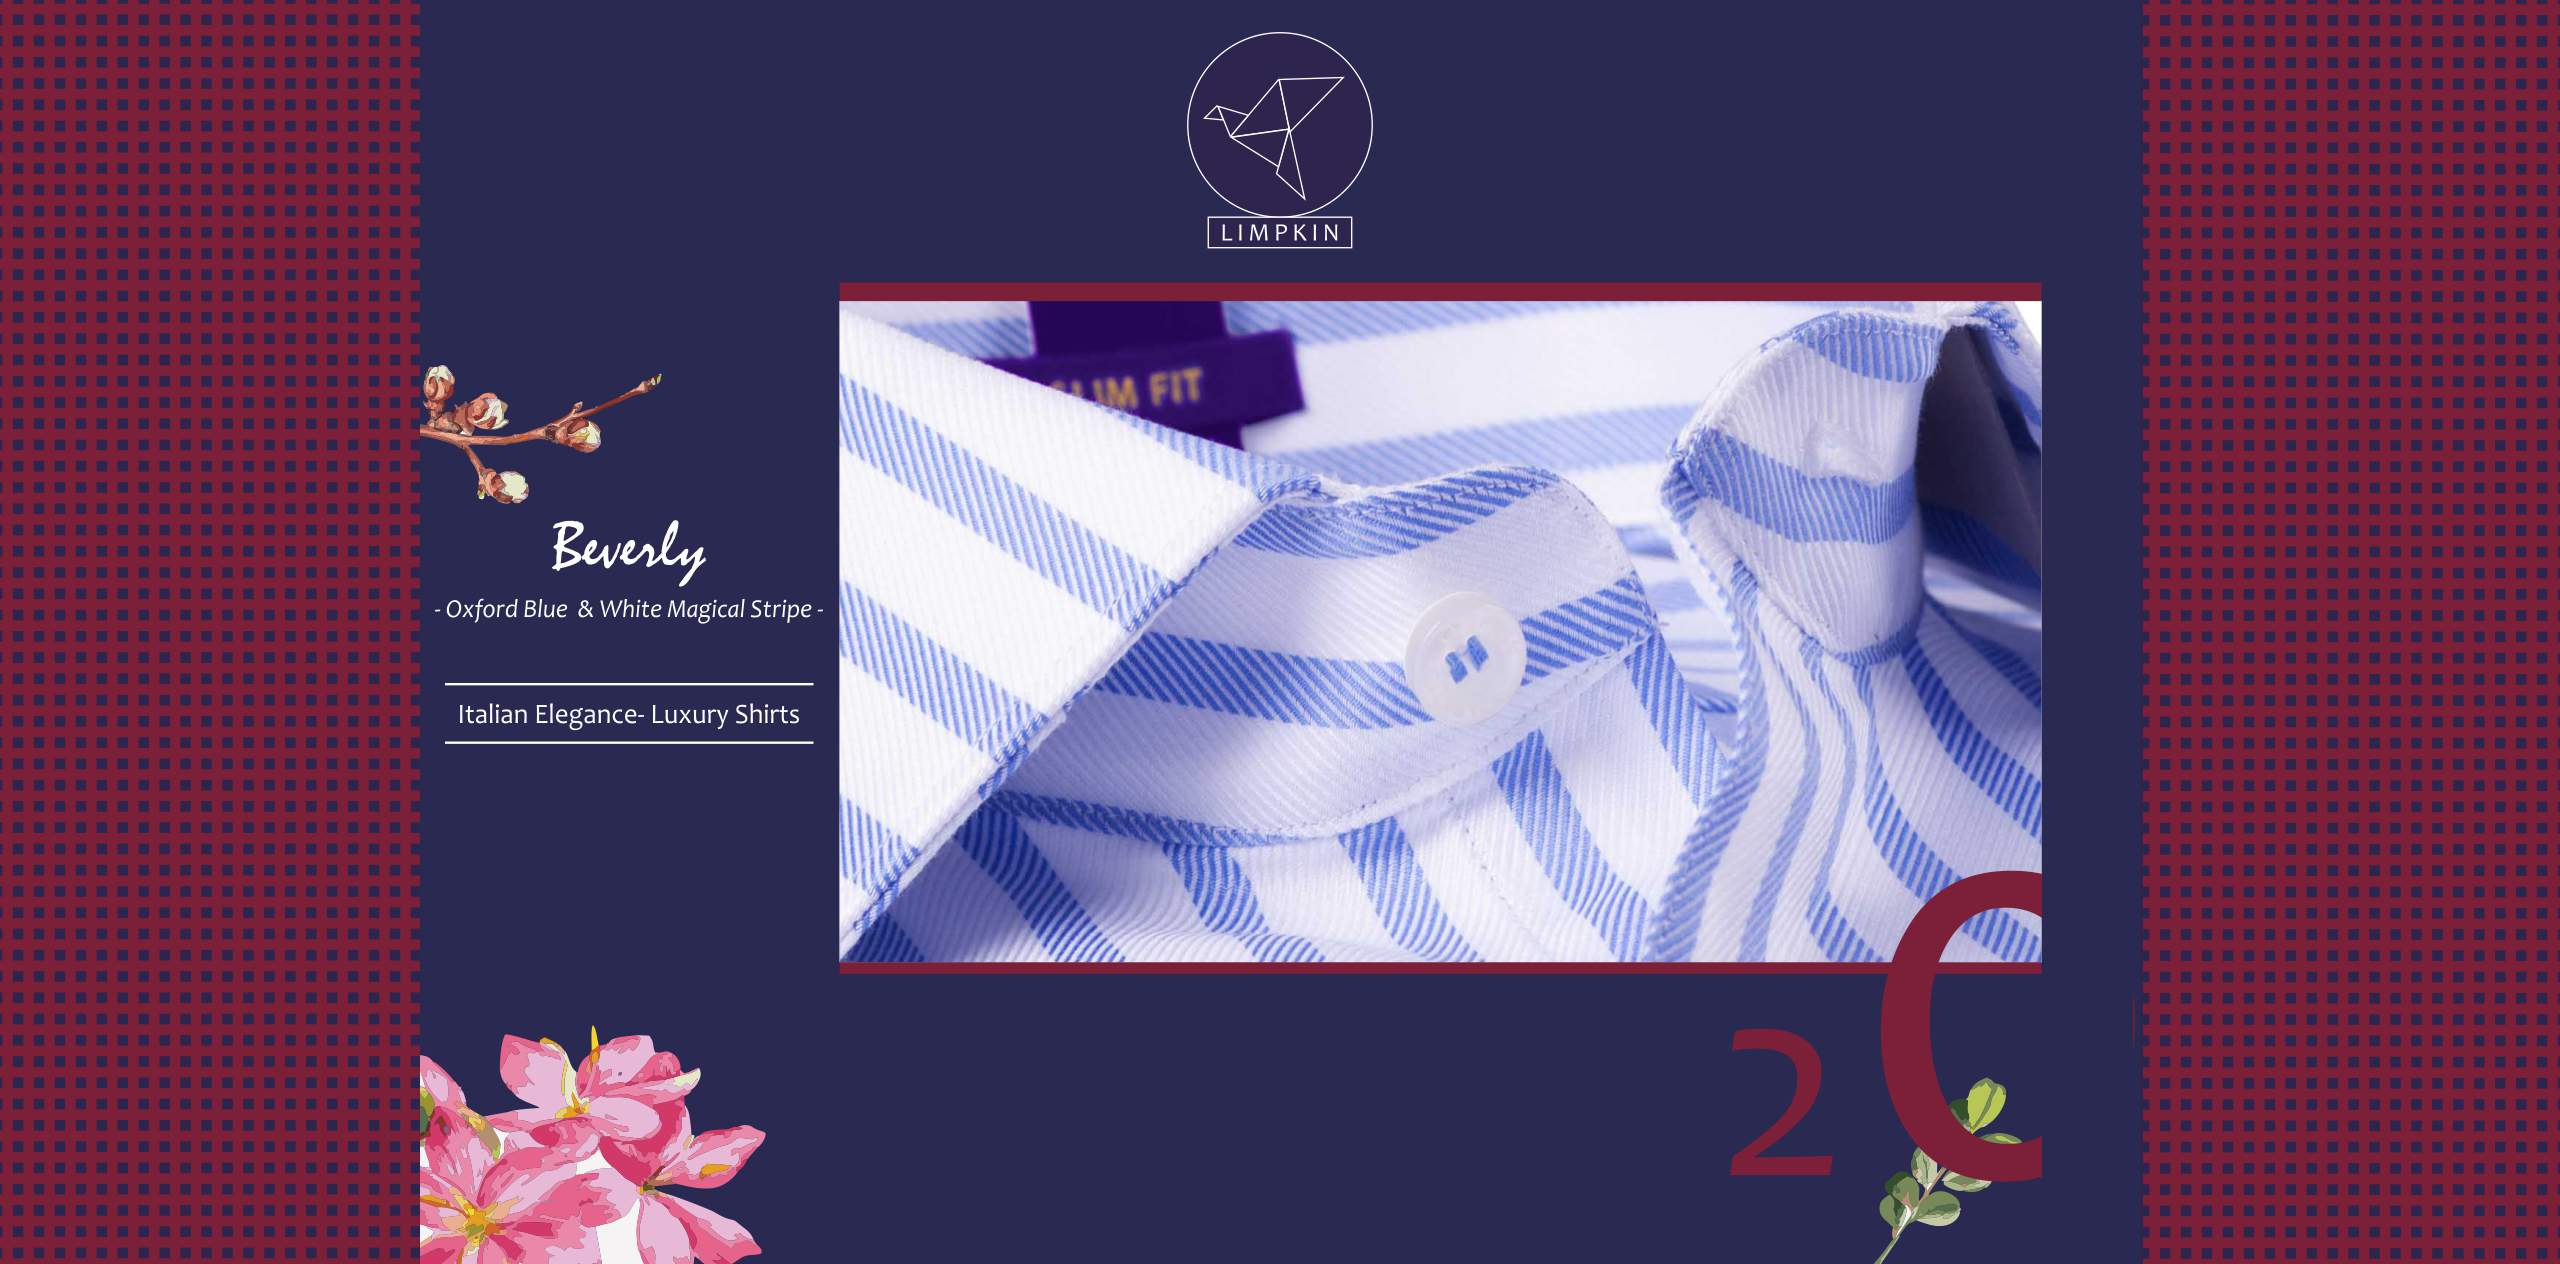 Beverly- Oxford Blue & White Magical Stripe- 2/120 Egyptian Giza Cotton- Delivery from 30th Sep - Banner